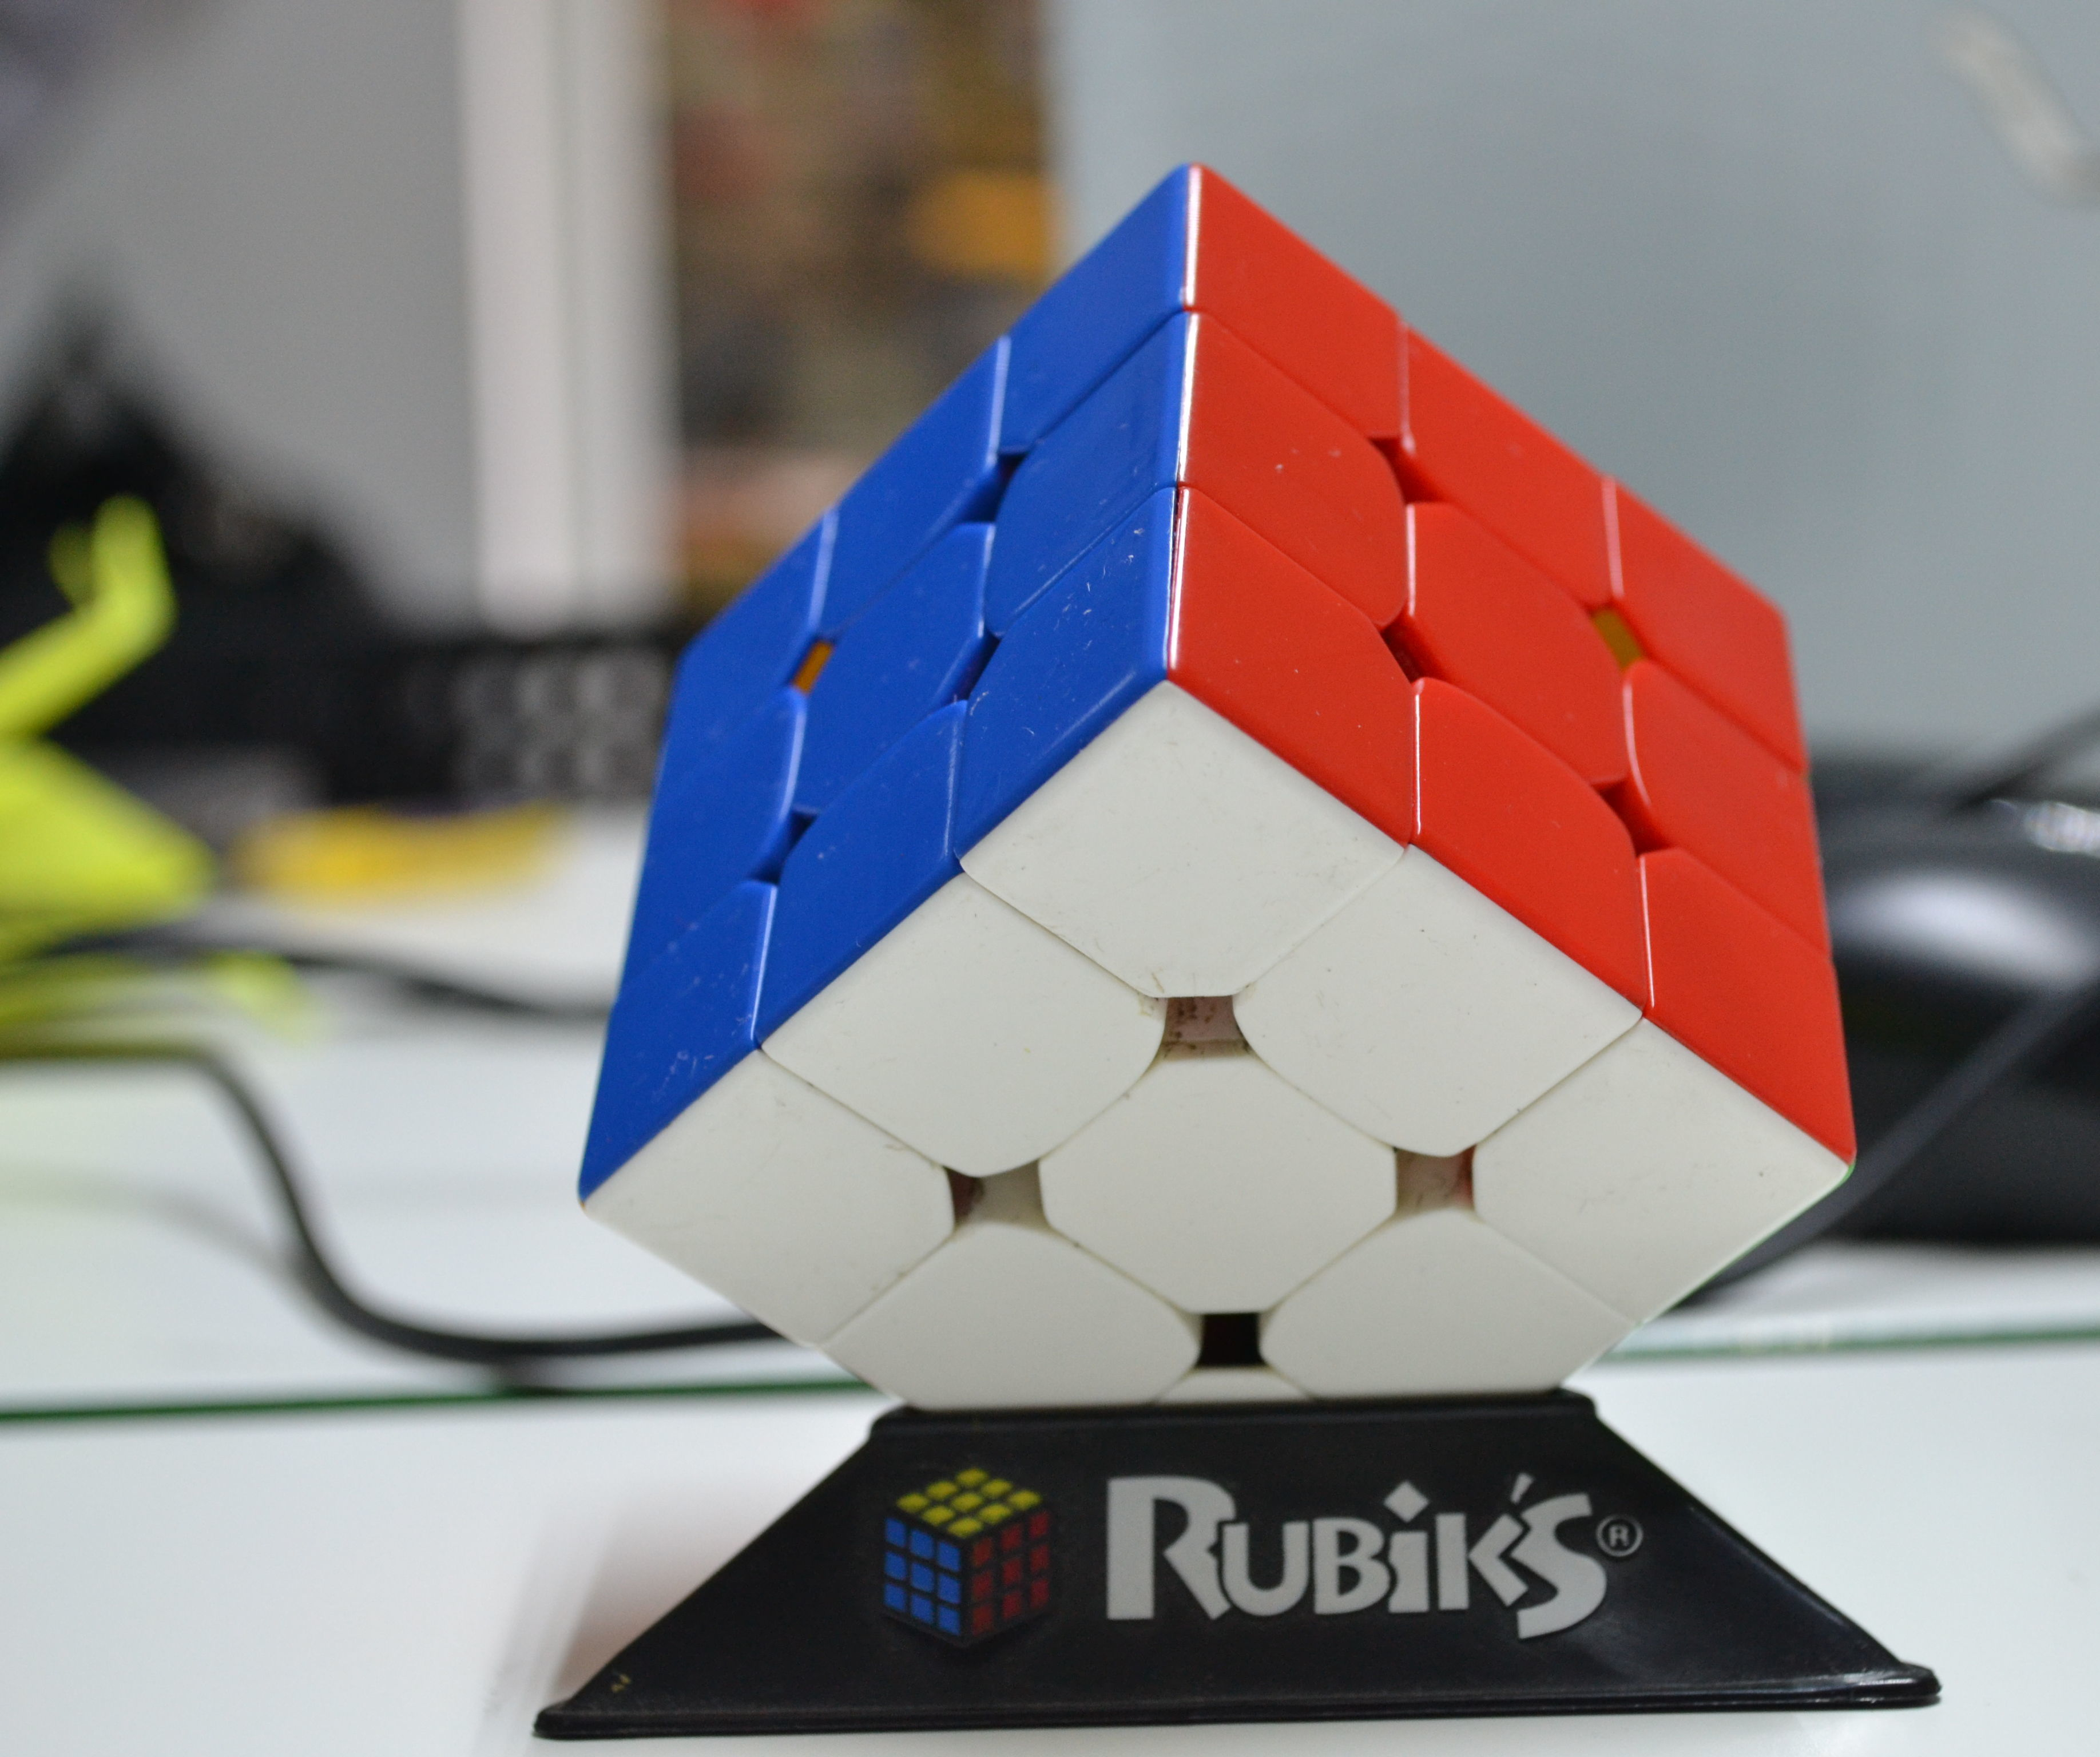 How to solve fridrich algorithm in Rubik's cube. The first 5